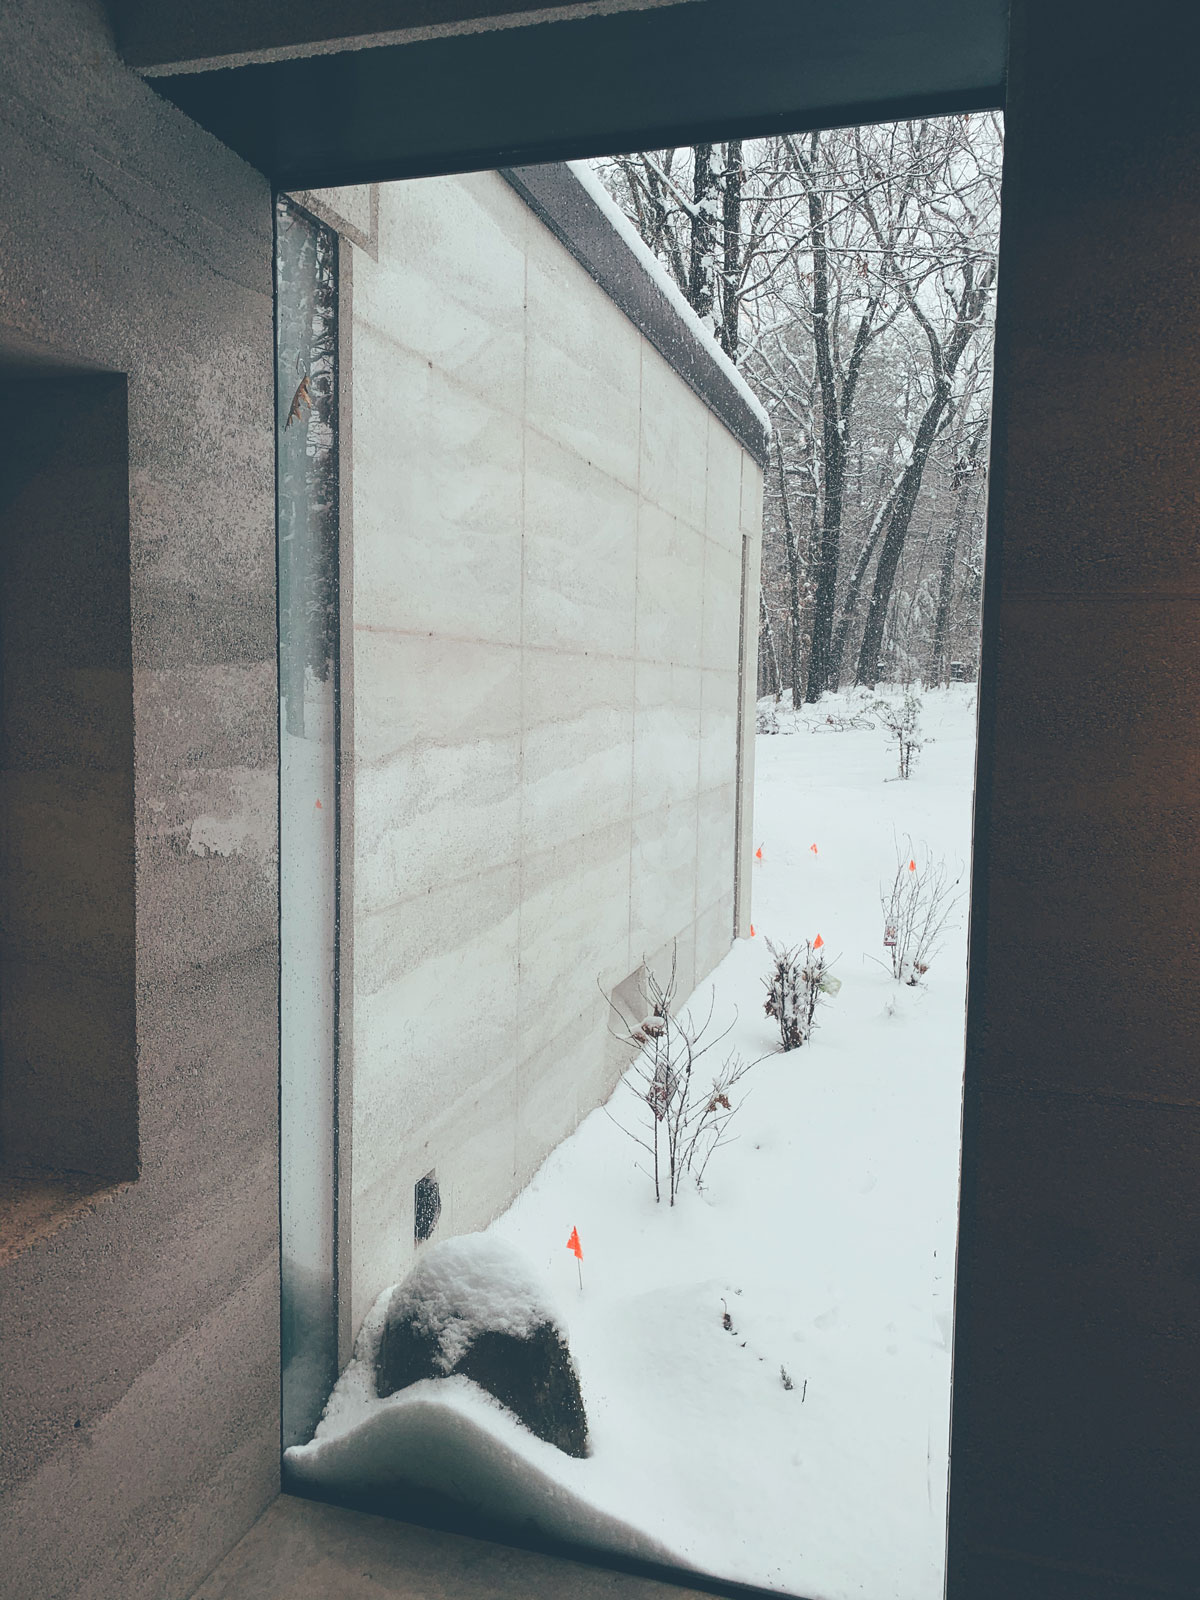 Snow built up against the glass at the modern cabin